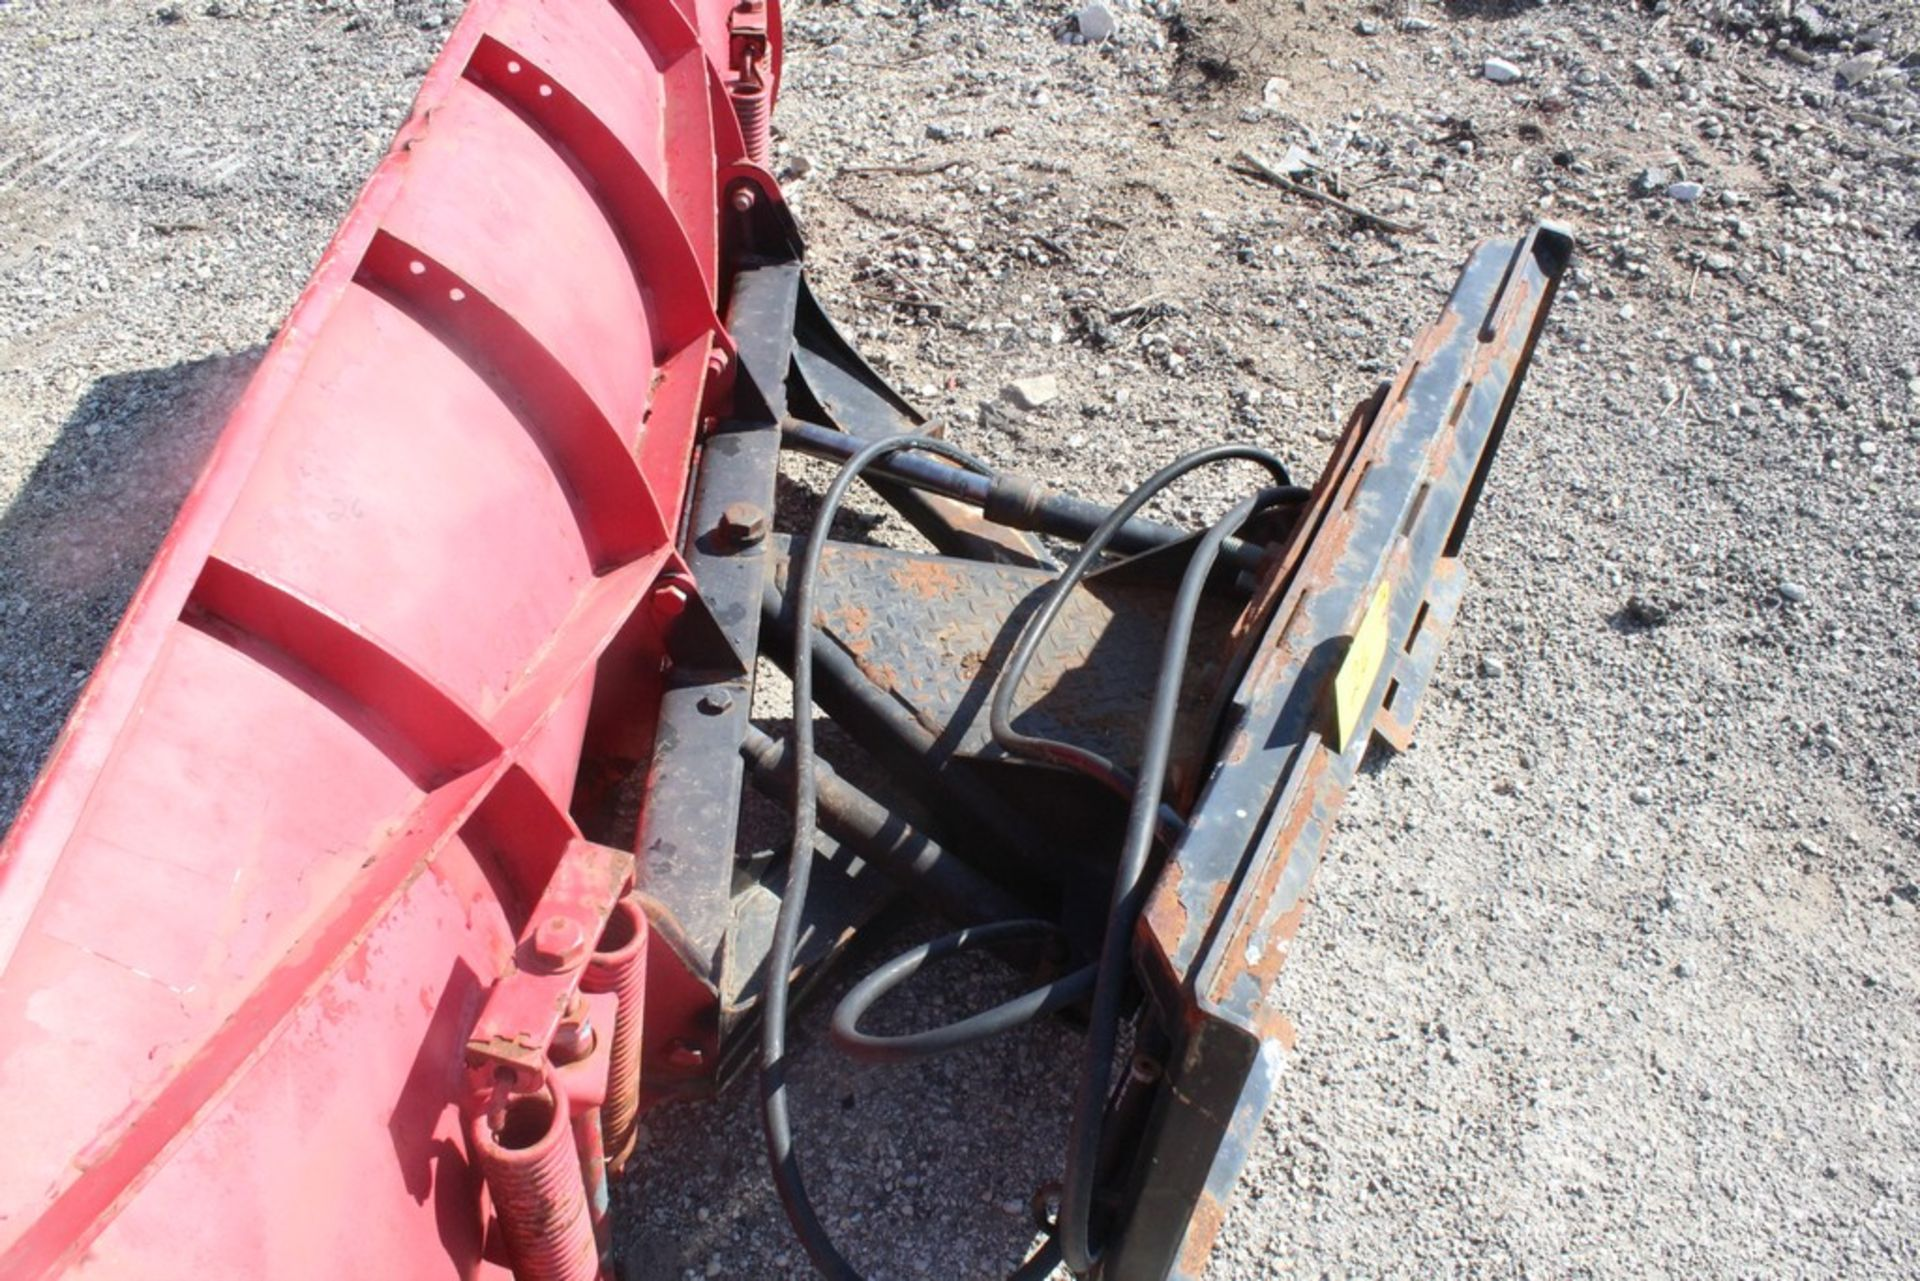 CUSTOM FABRICATED 96-IN. BOLT-TOGETHER HYDRAULIC SNOW PLOW ATTACHMENT, 96-IN. BLADE, TO FIT SKID - Image 3 of 4